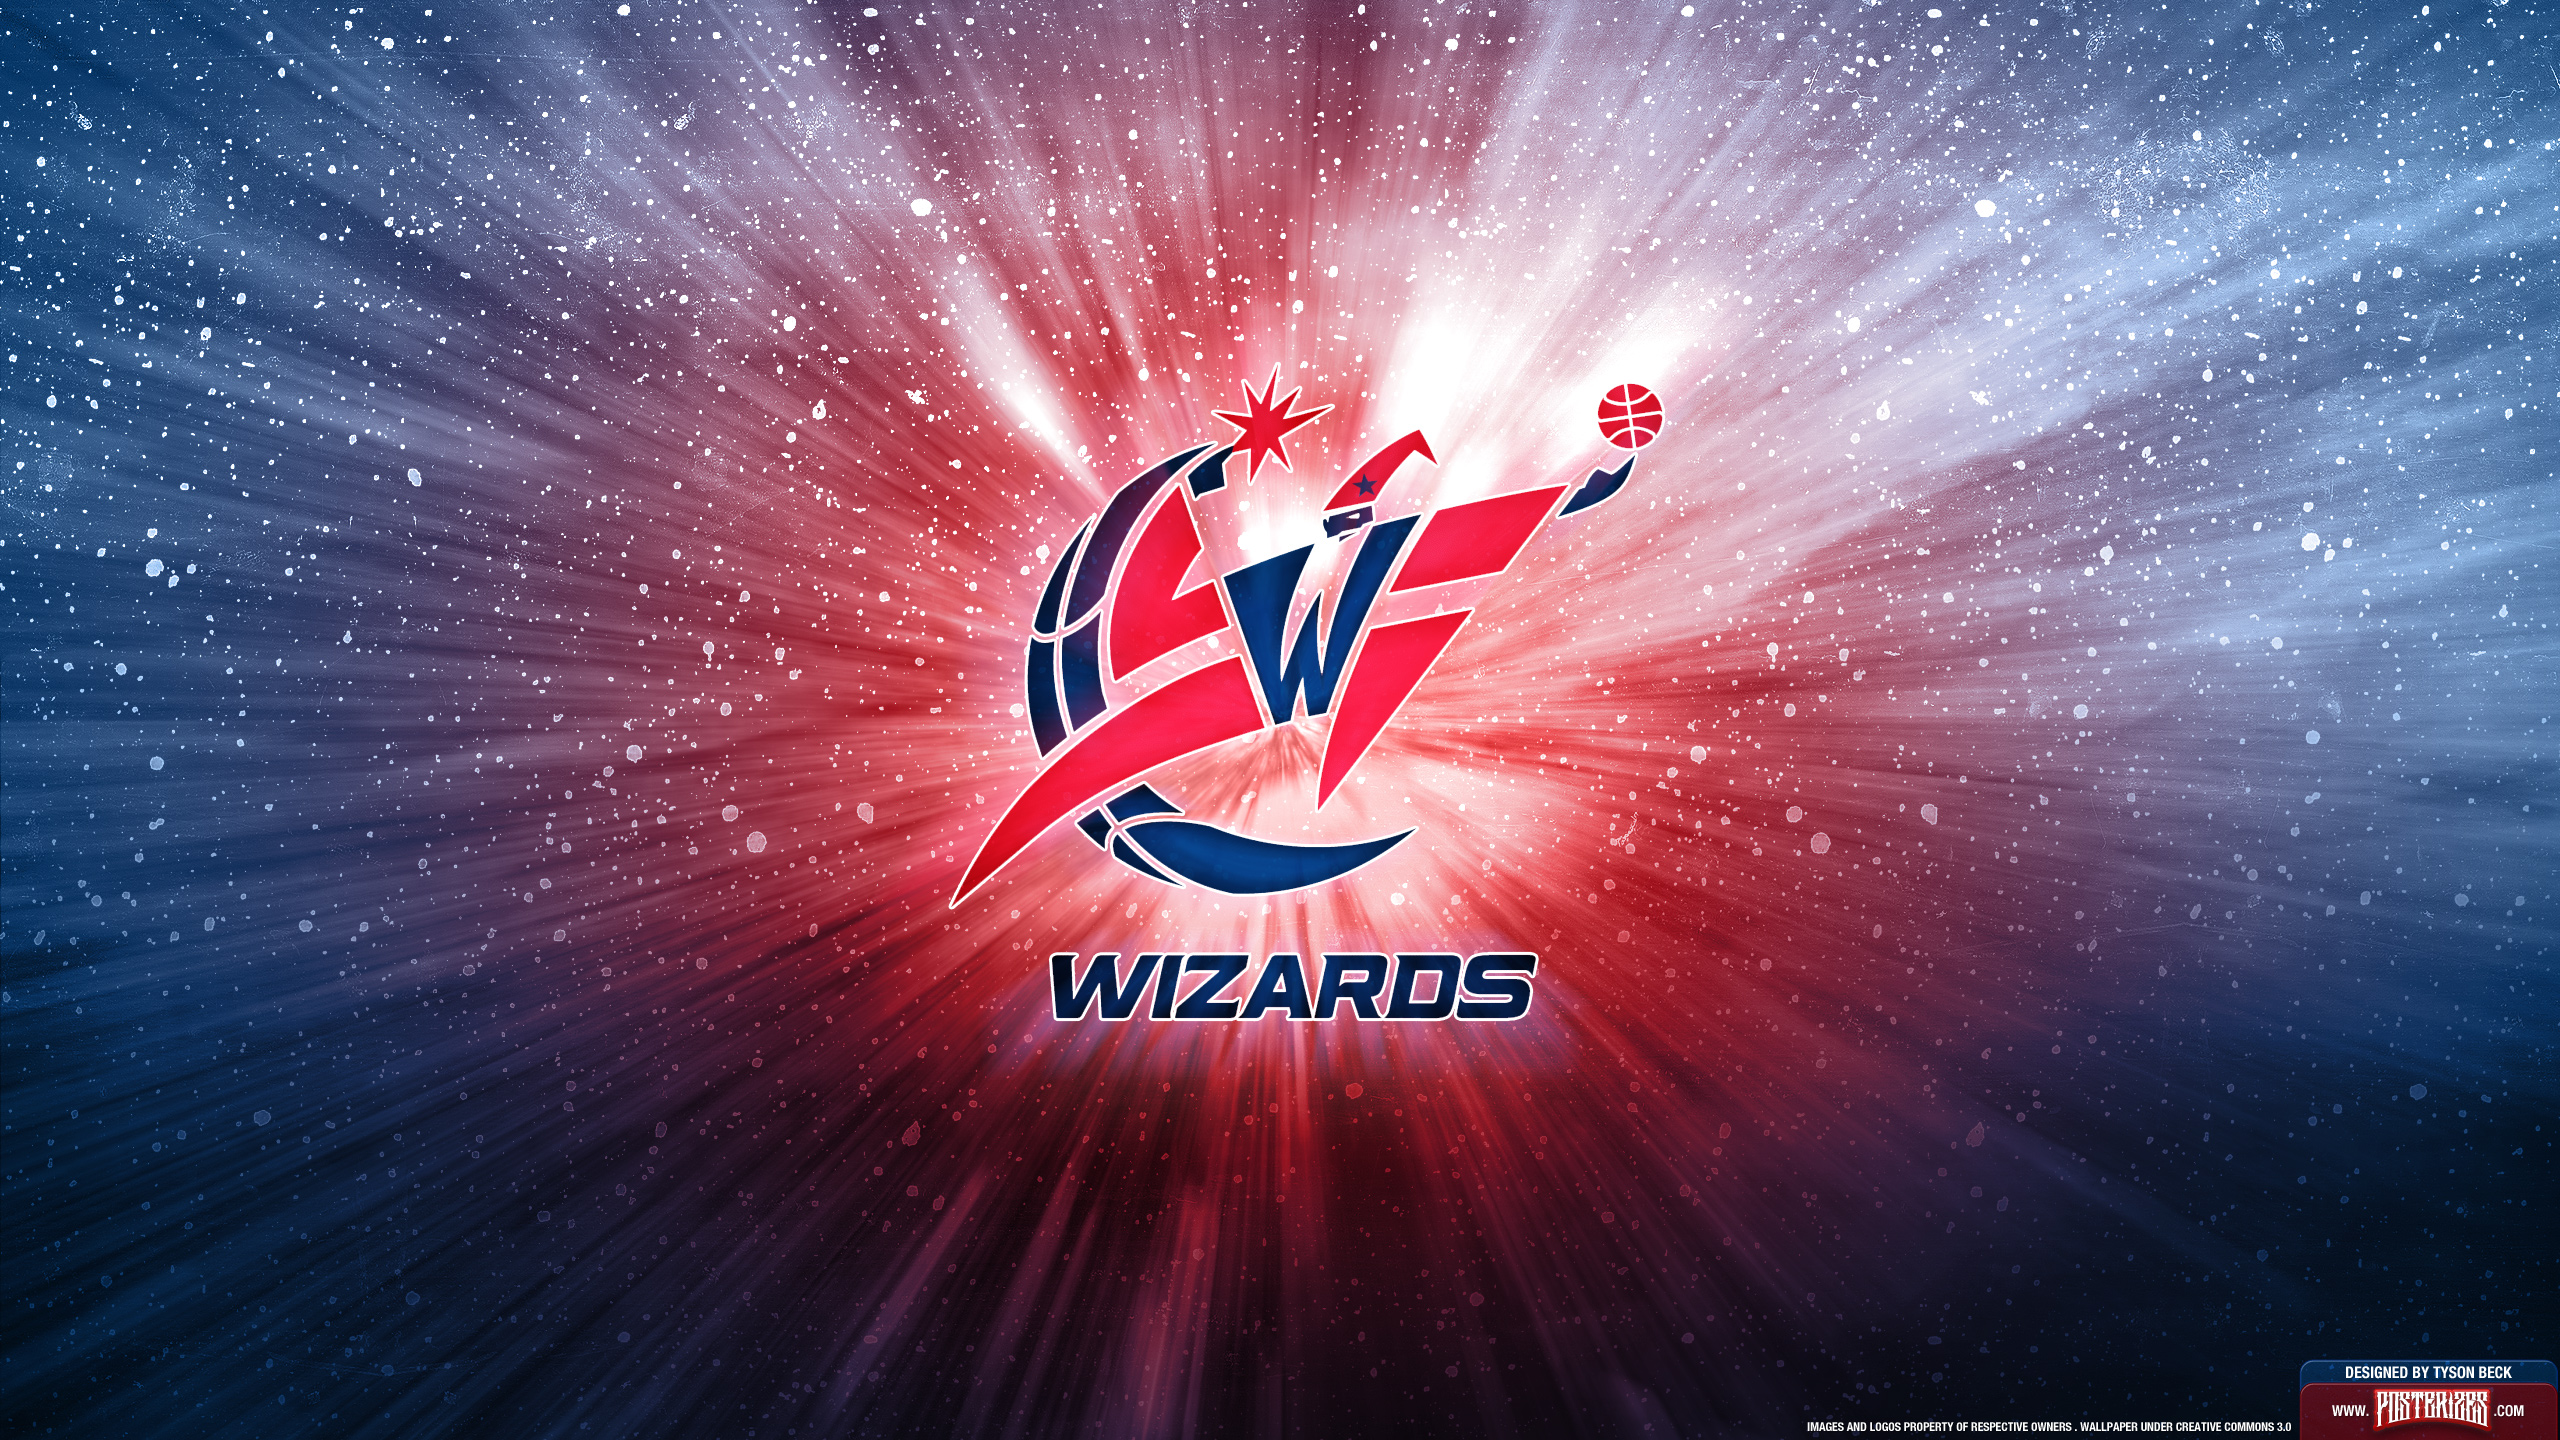 Wizards Wallpaper